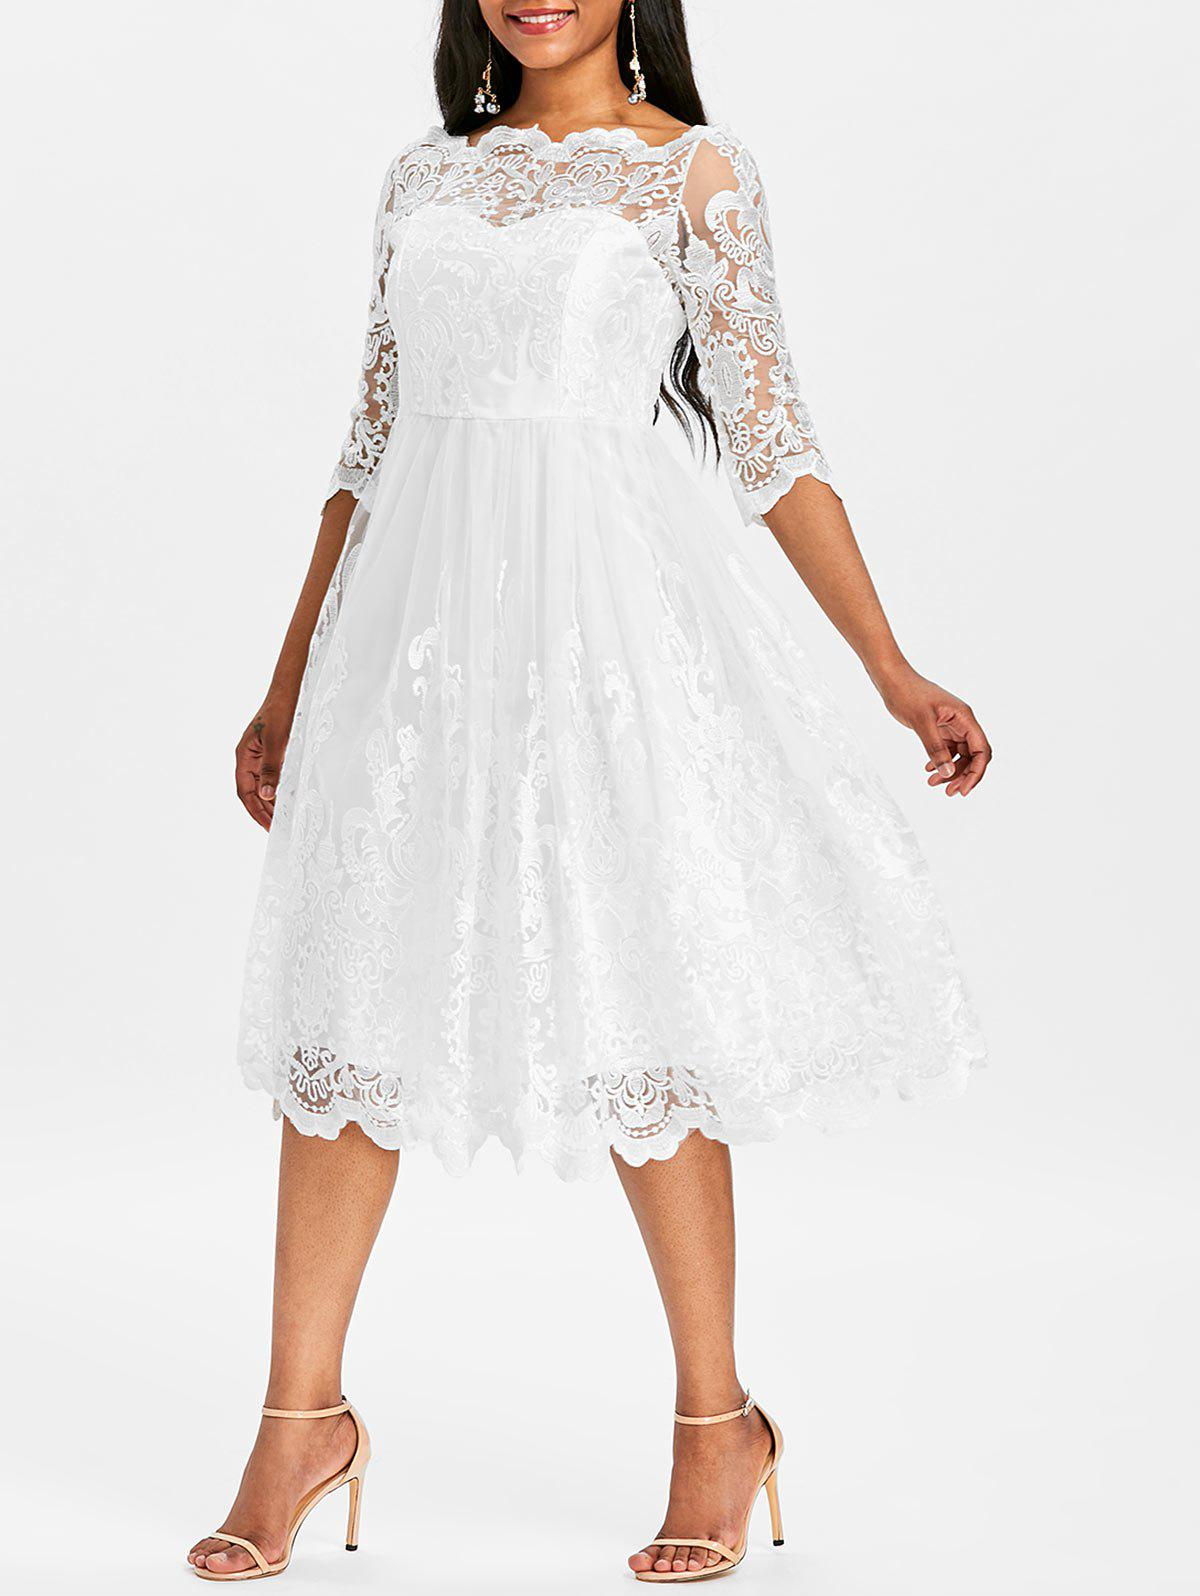 Shops Three Quarter Sleeve Wedding Lace Dress